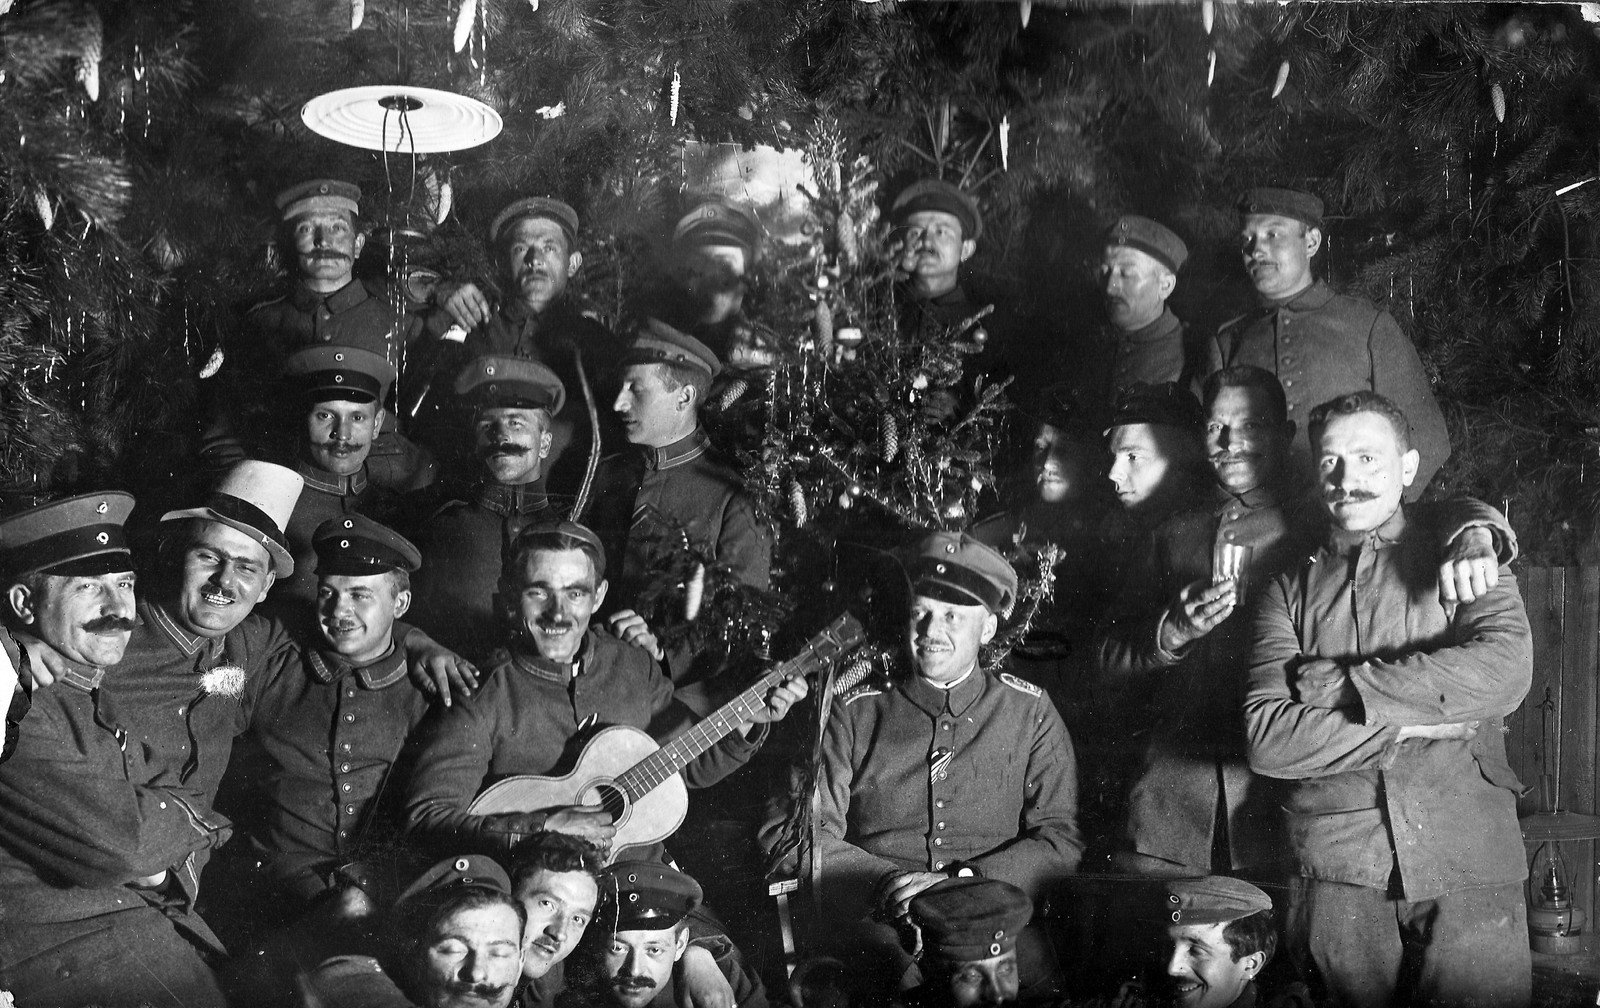 Celebrating Christmas, unknown photographer, Rolf Kranz/Europeana 1914-1918, CC BY-SA